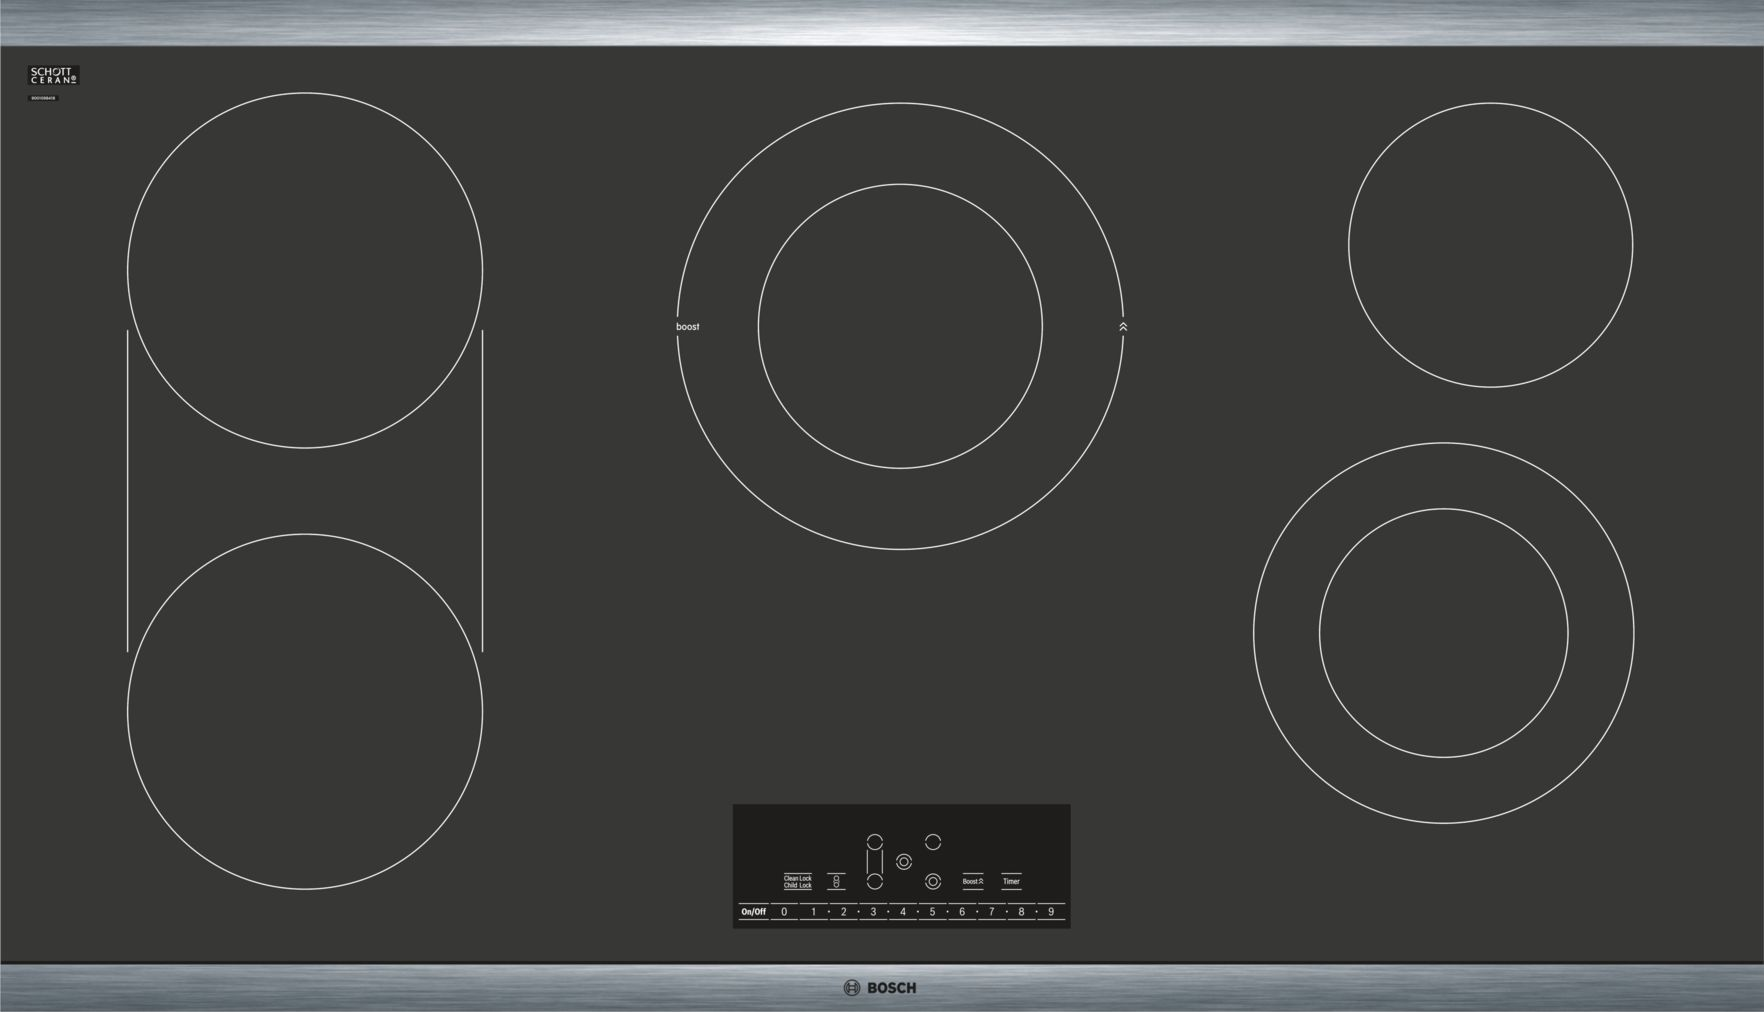 "Model: NET8668SUC | Bosch 800 Series36"" Touch Control Electric Cooktop, NET8668SUC, Black with Stainless Steel Frame"